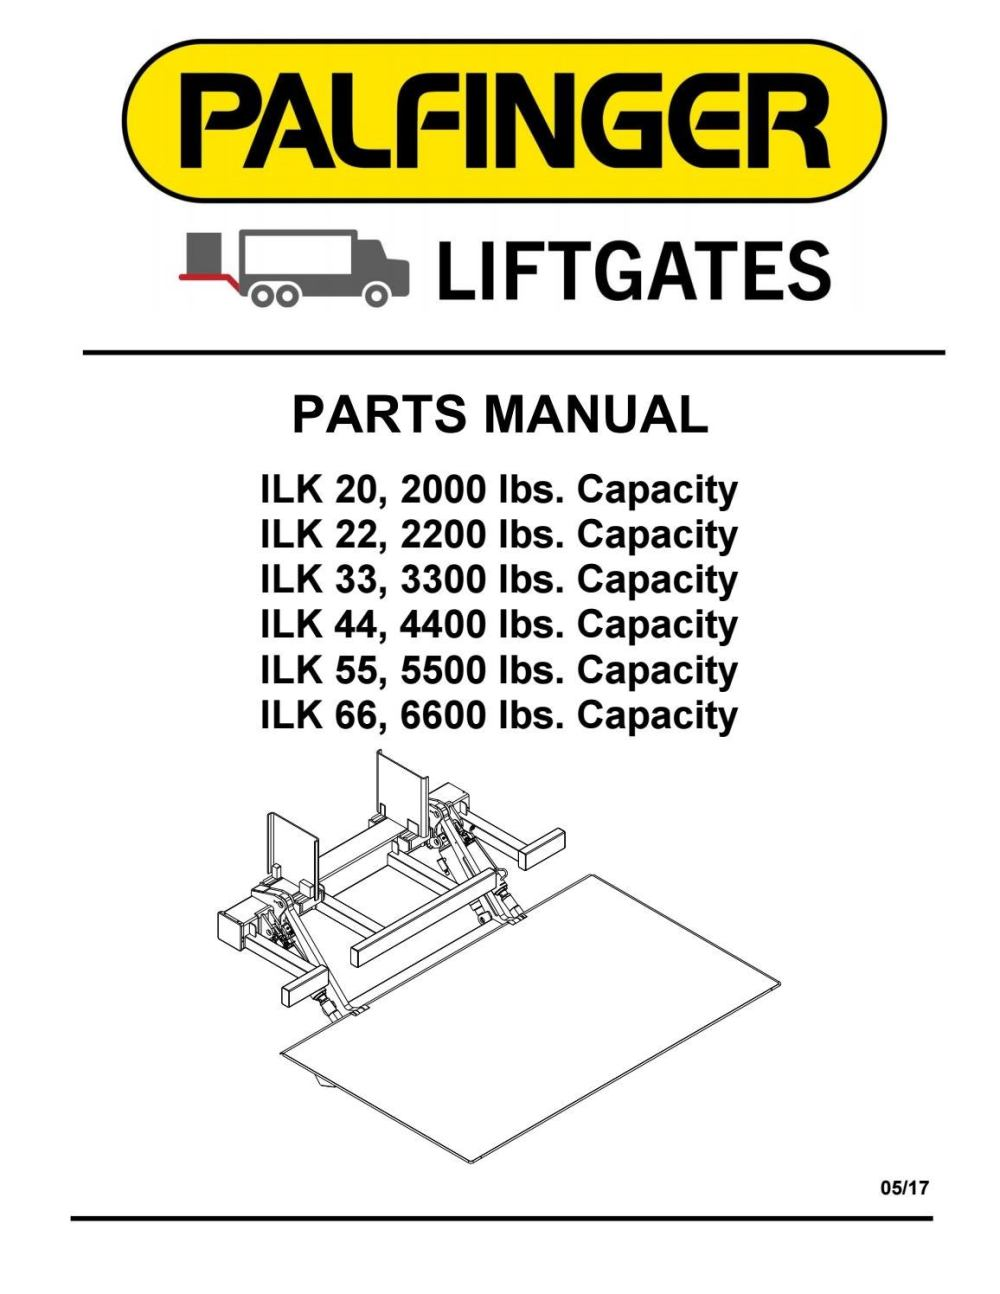 medium resolution of palfinger ilk 20 22 33 44 55 66 liftgate parts manual by the liftgate parts co issuu